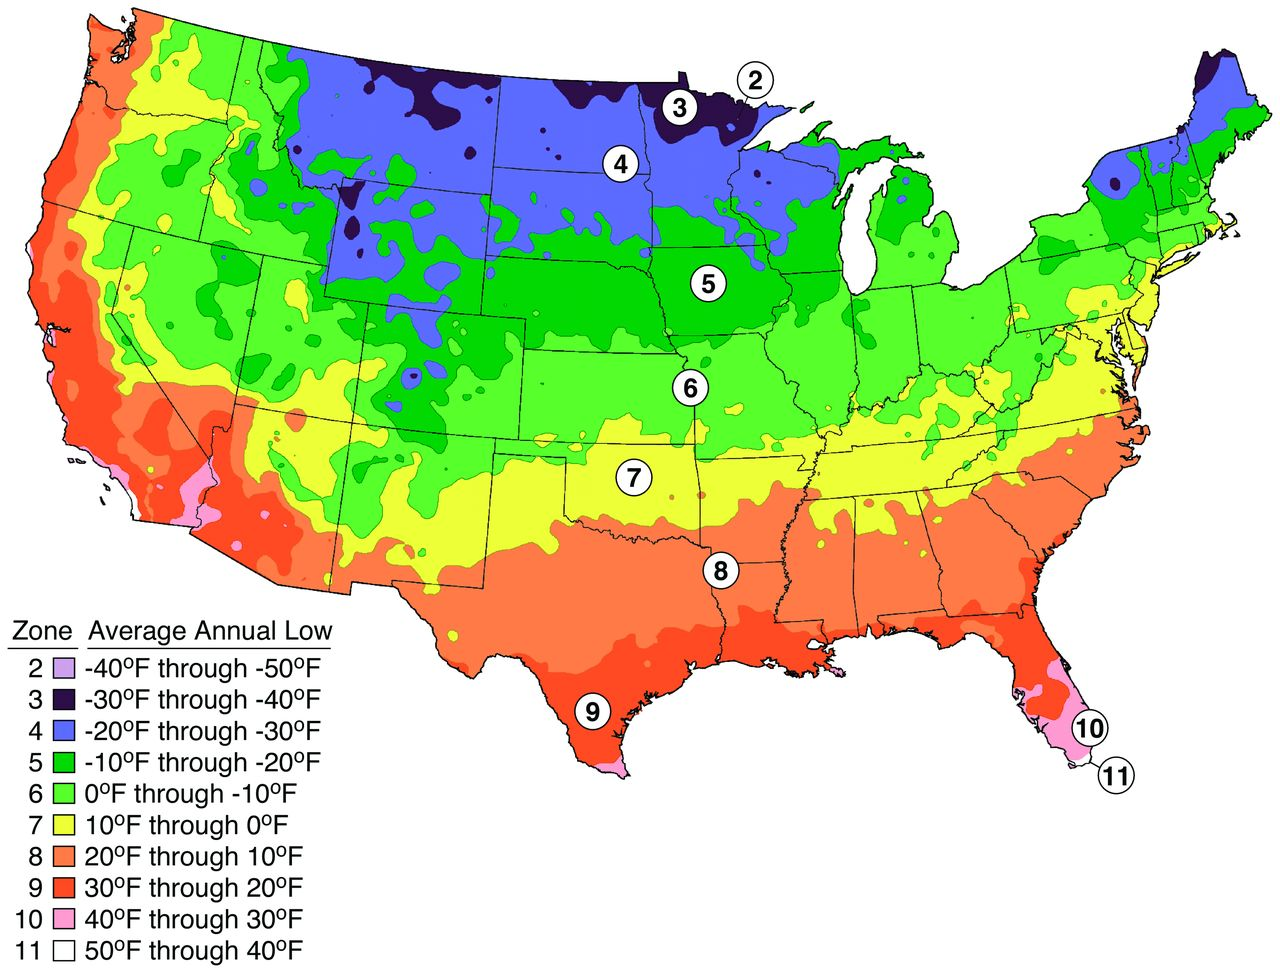 Subarachnoid Hemorrhage Incidence In The United States Does Not - Annual low temperatures us map